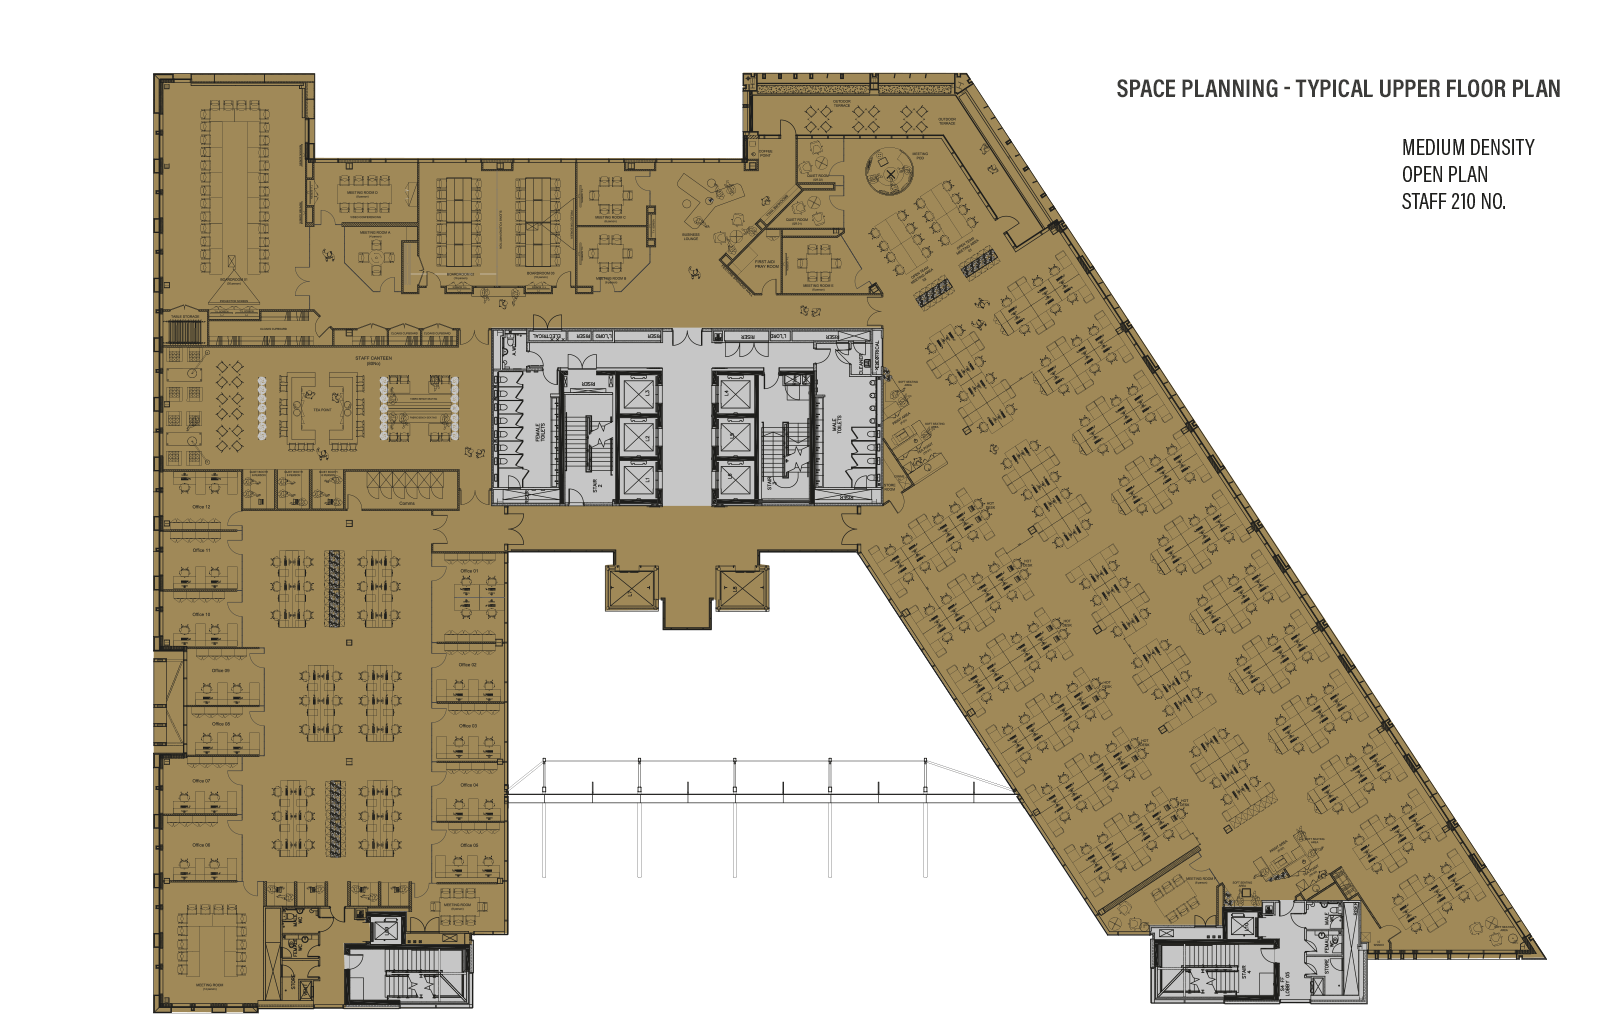 Typical Upper Floor - Space Planning - Medium